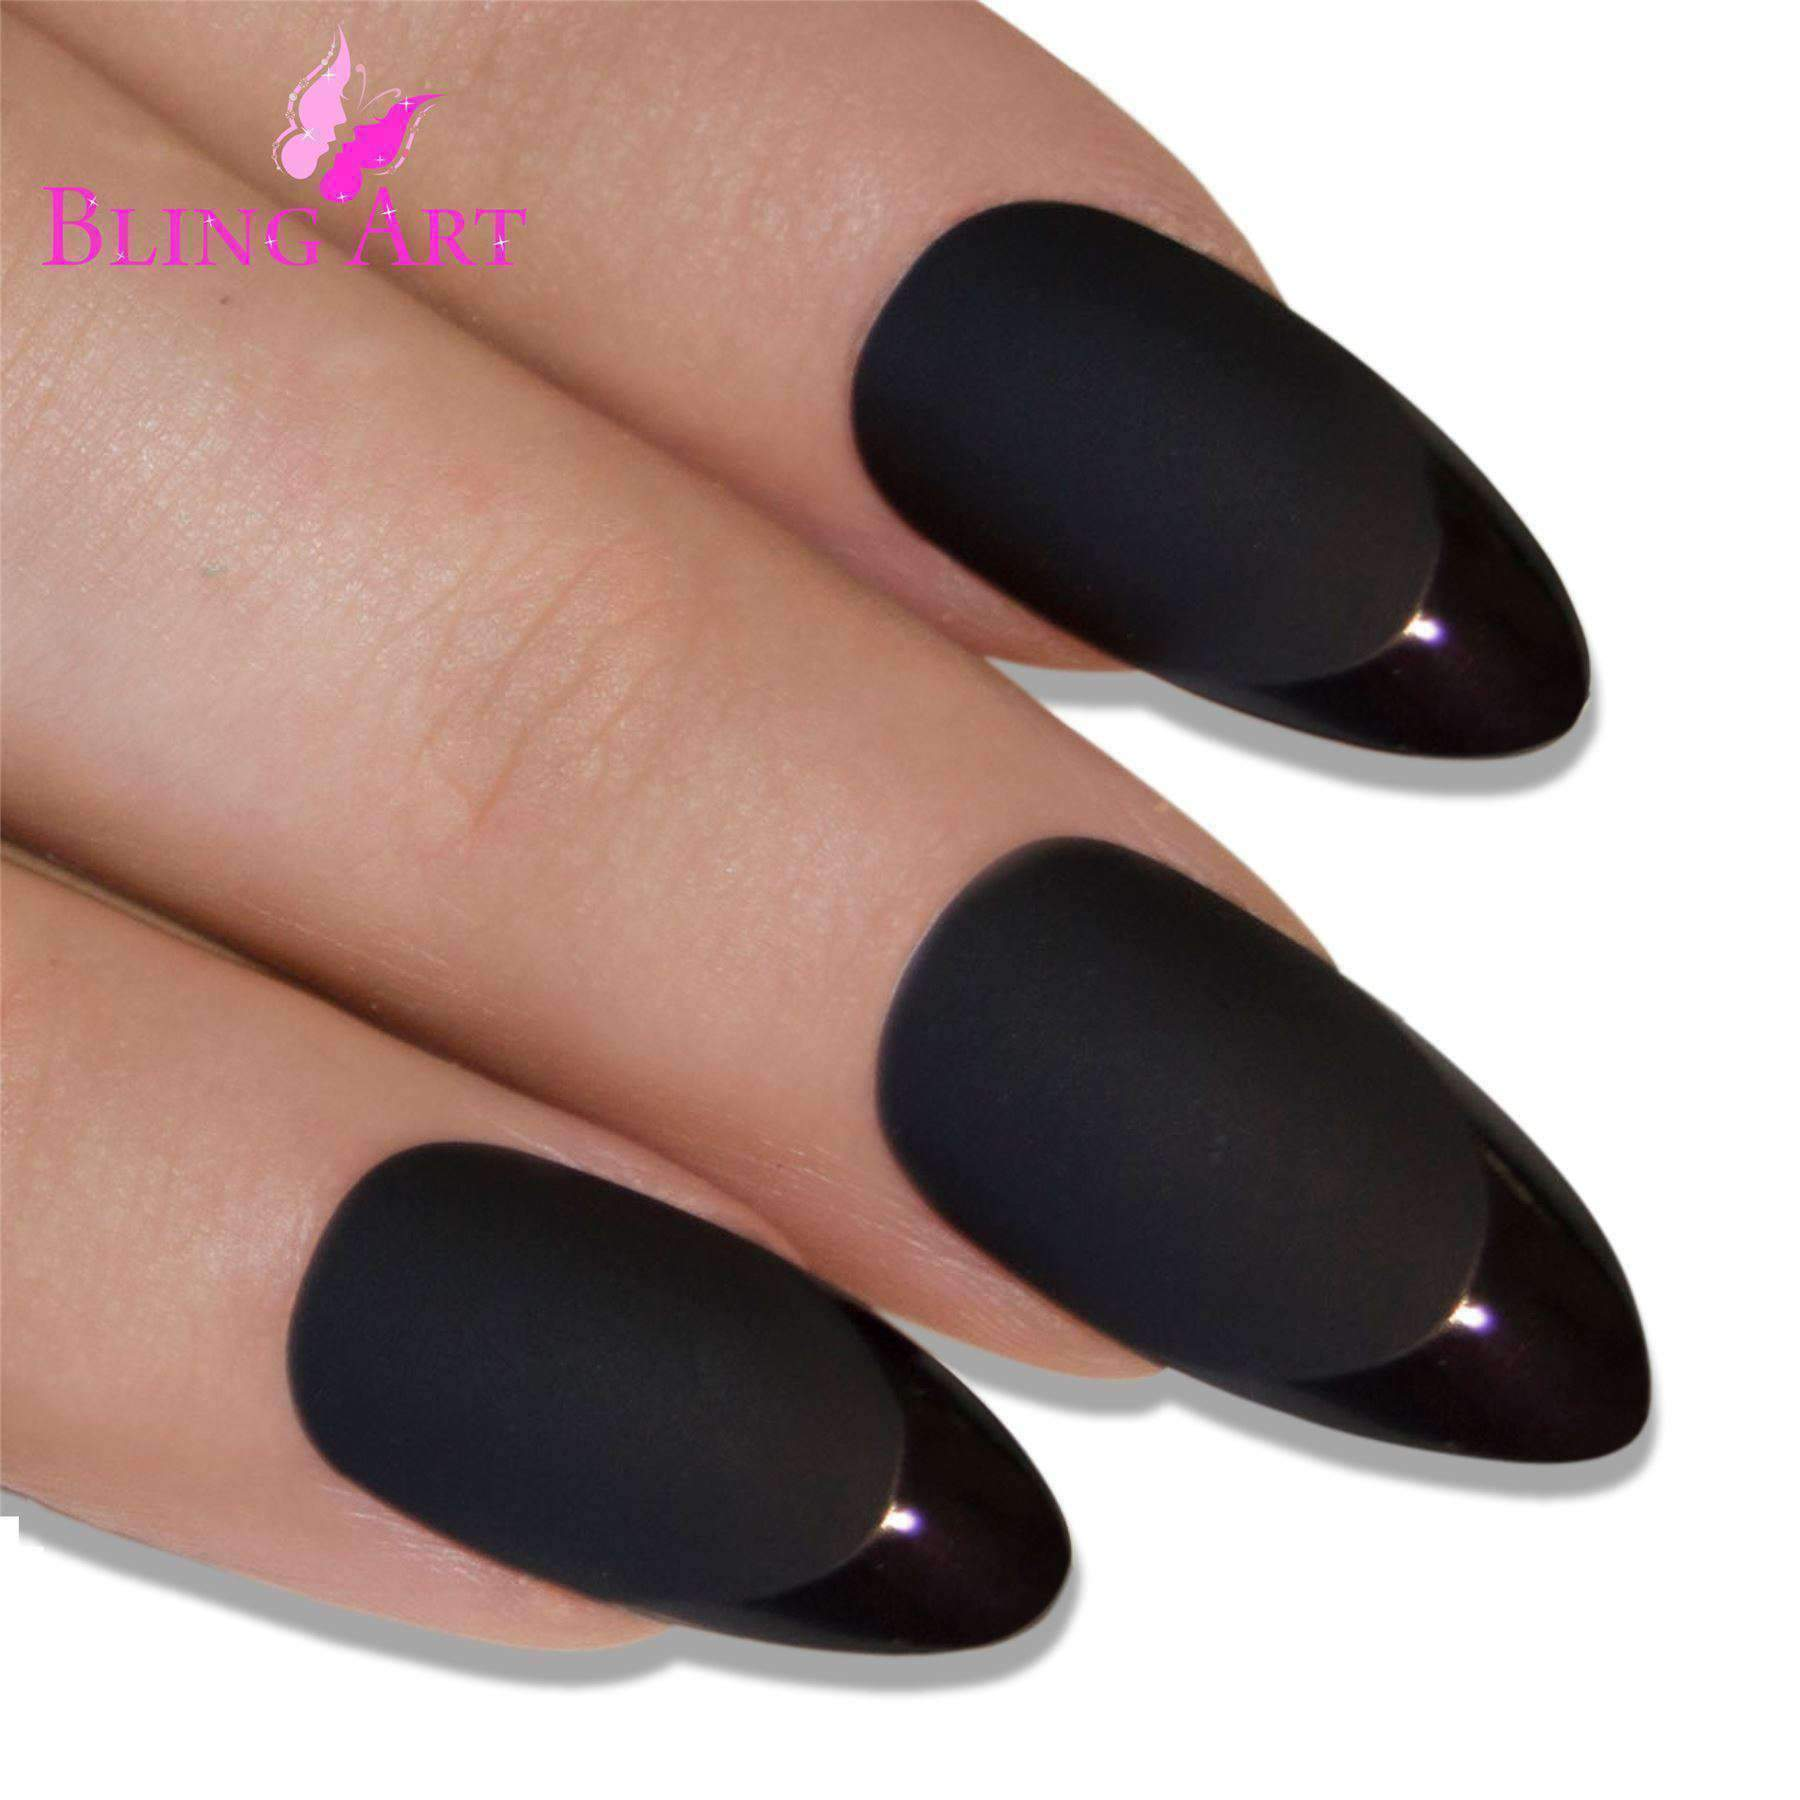 Black Matte Almond Stiletto Acrylic Nails | I'm Spoiled - Sp-oiled!